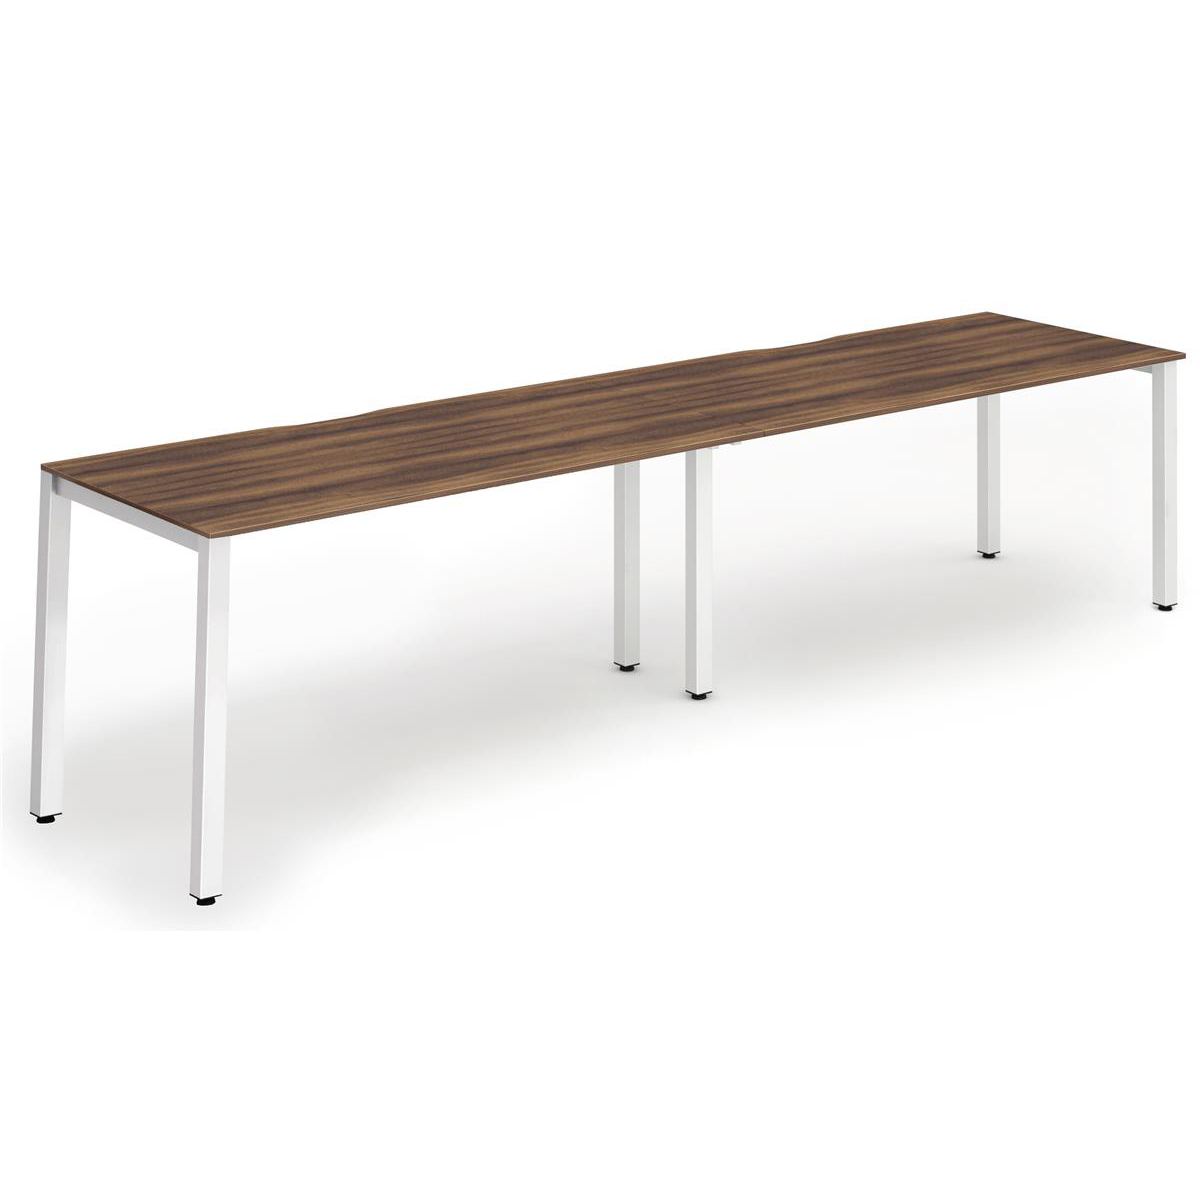 Trexus Bench Desk 2 Person Side to Side Configuration White Leg 2800x800mm Walnut Ref BE354